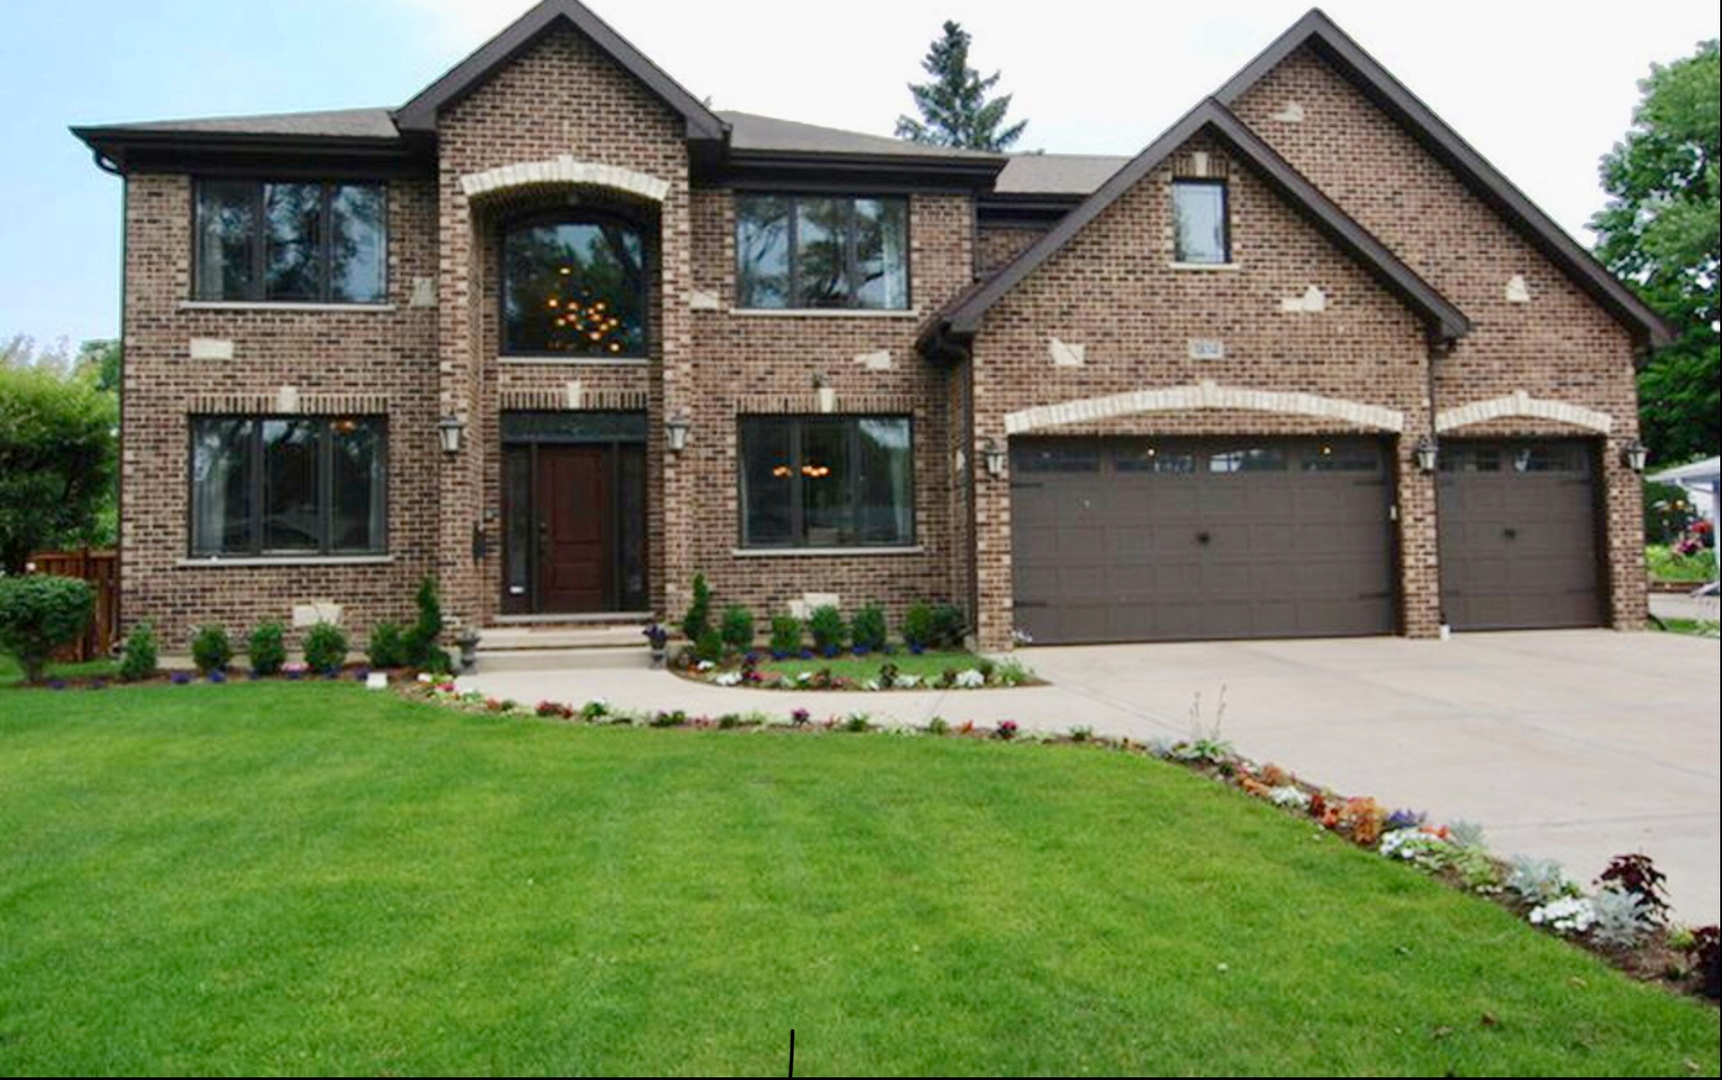 1834 WHITTIER Lane, Schaumburg, Illinois